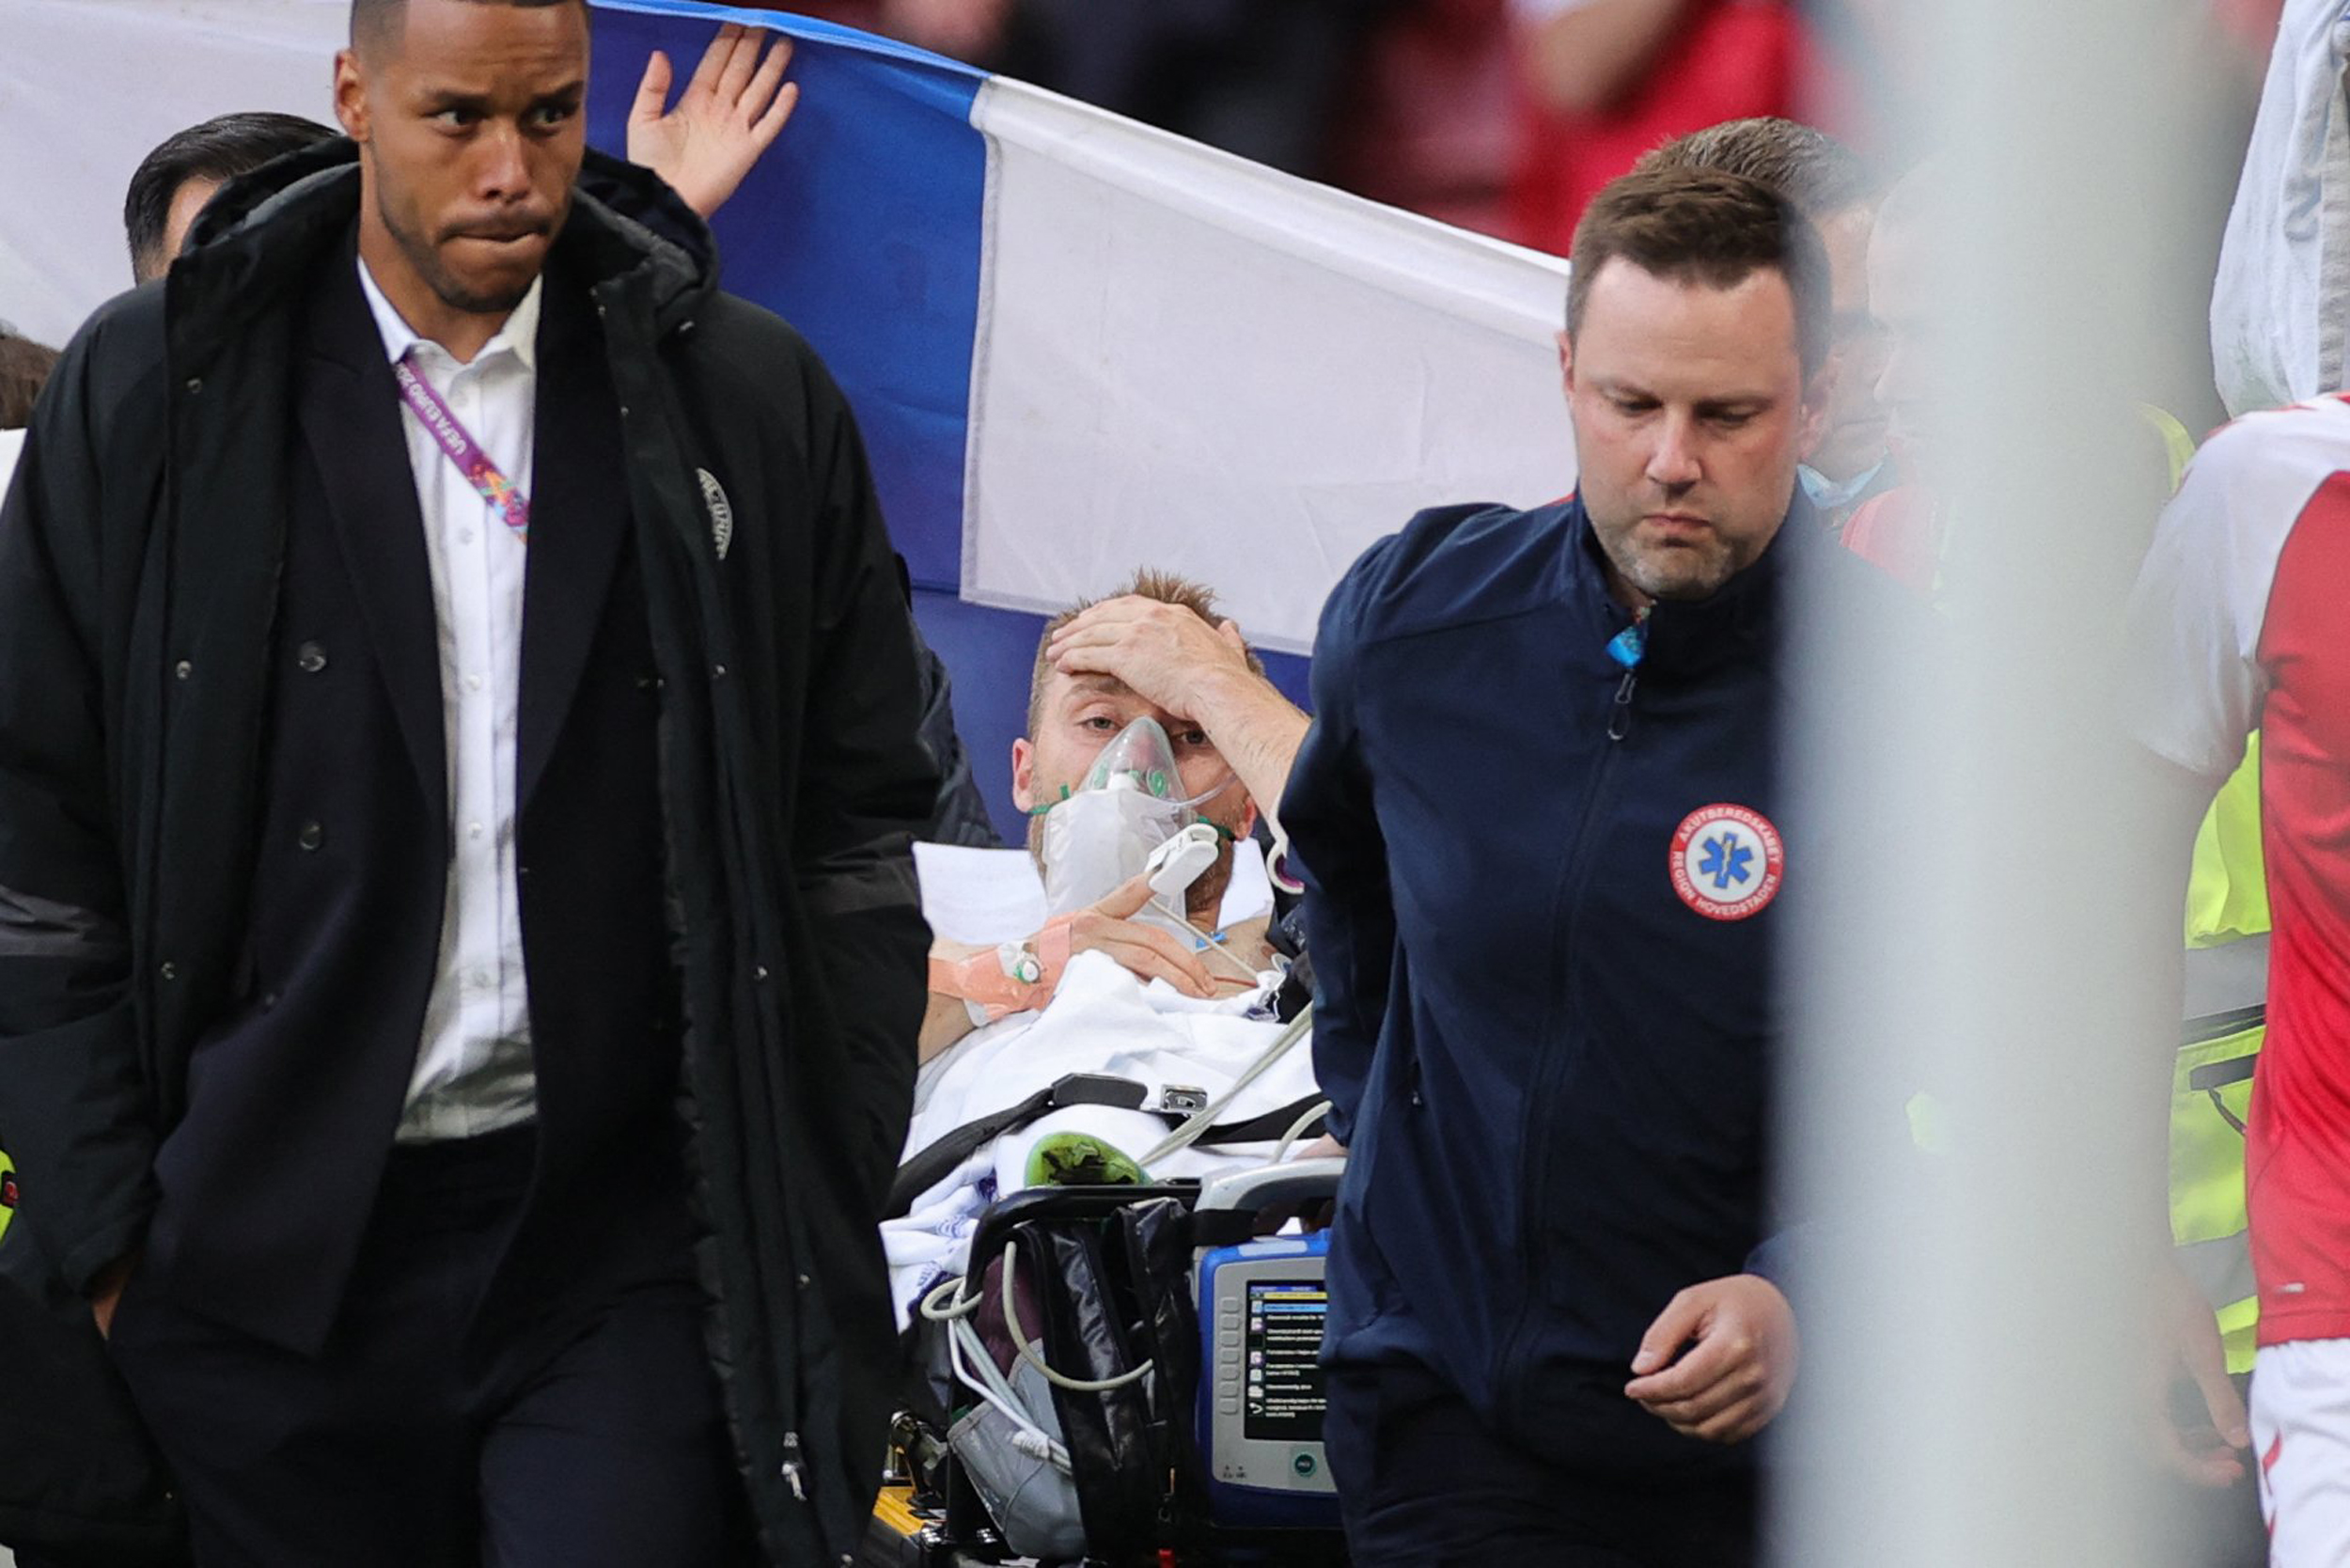 Danish soccer star Christian Eriksen collapses mid-game, is resuscitated on field